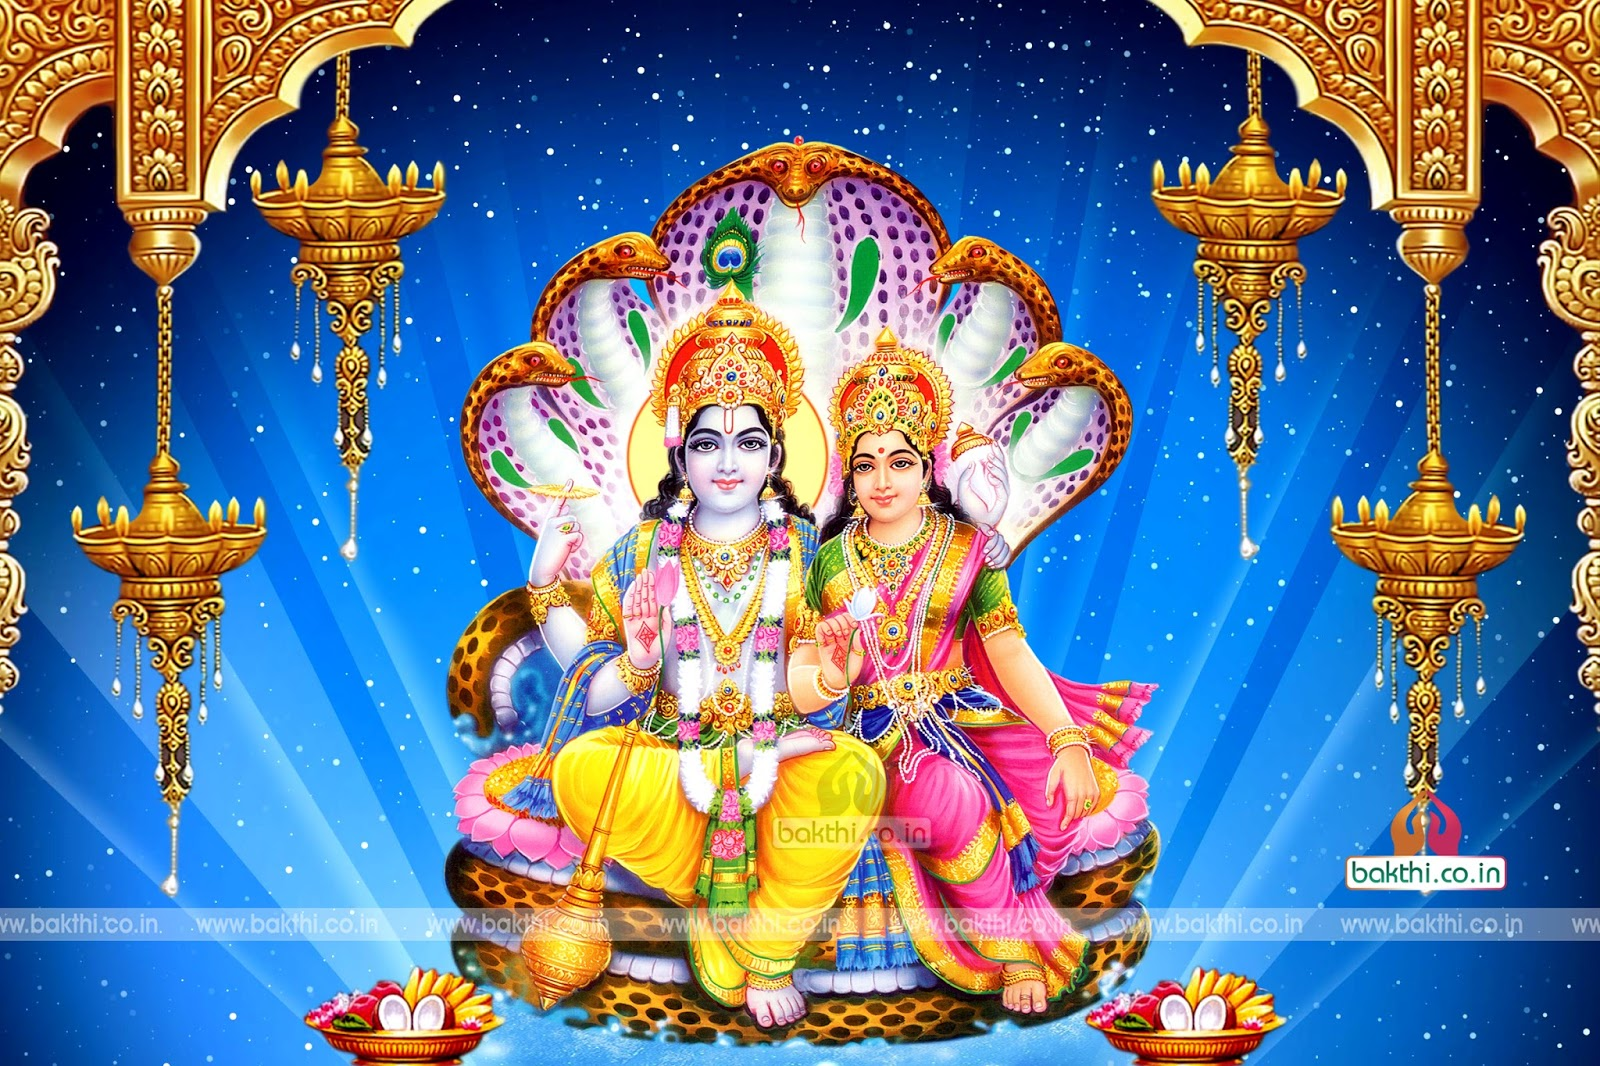 lord vishnu and goddess lakshmi photos wallpapers pictures